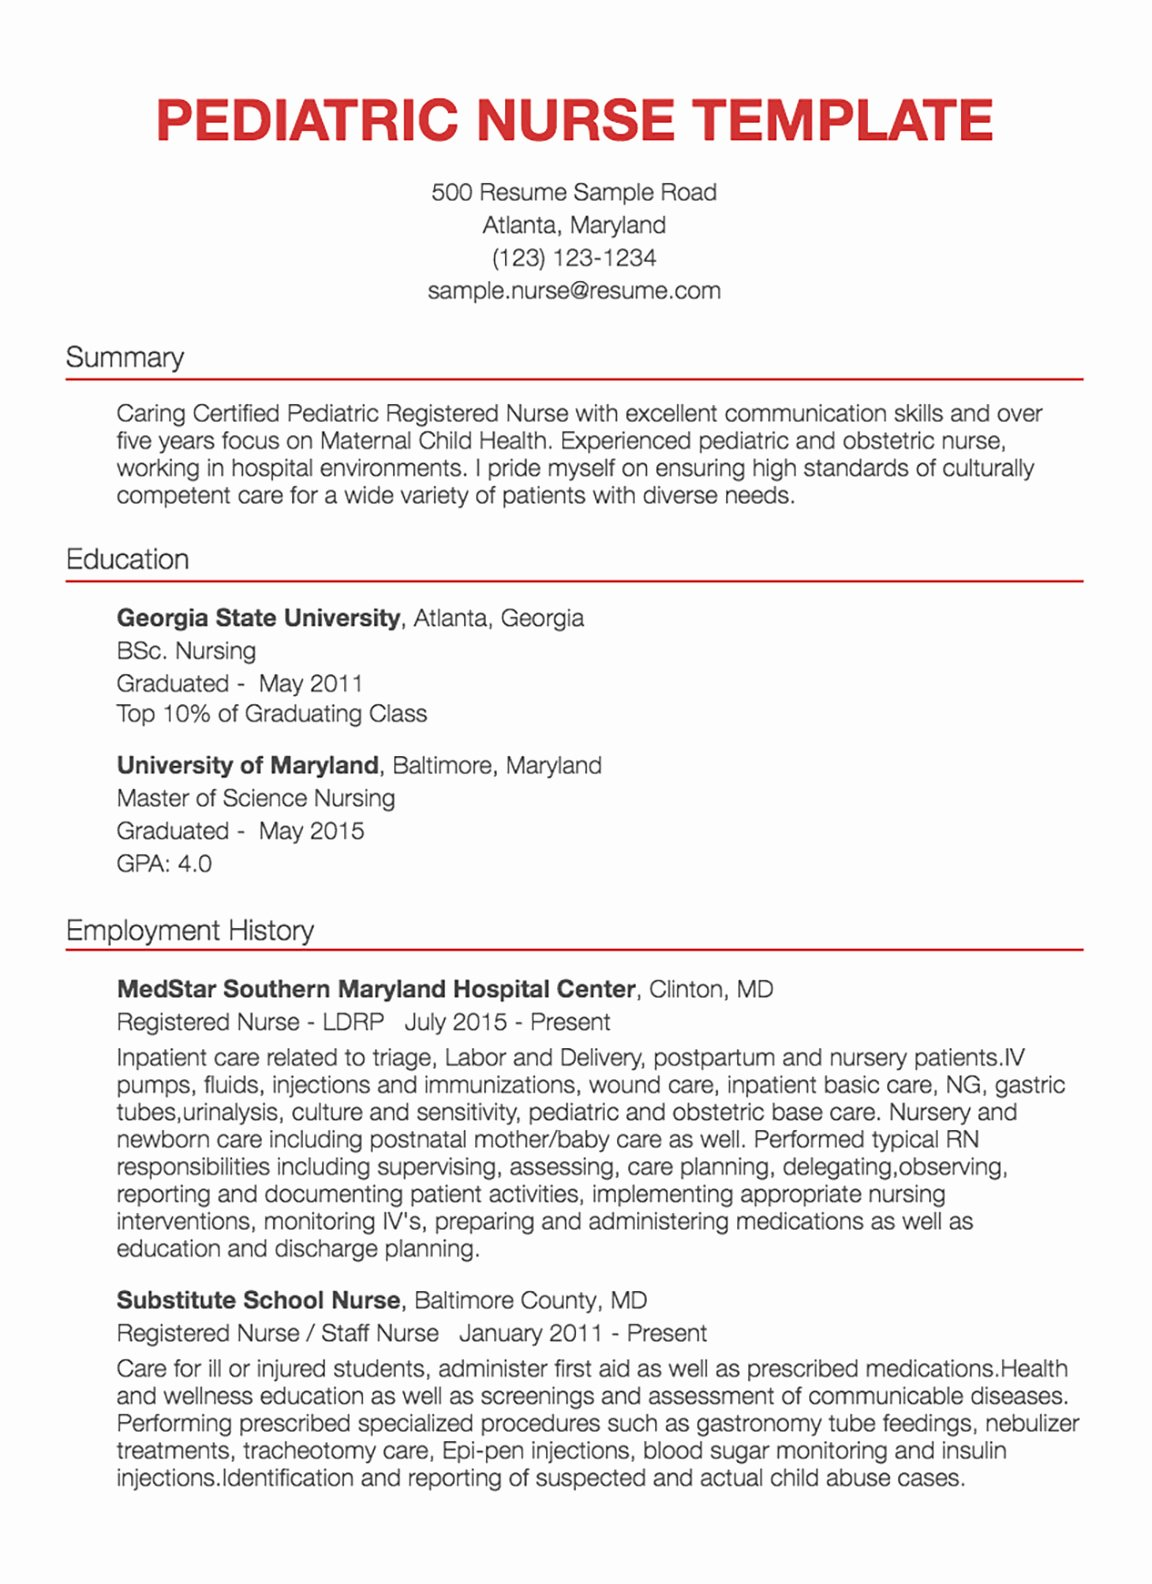 Nursing Clinical Experience Resume New 30 Nursing Resume Examples & Samples Written by Rn Managers